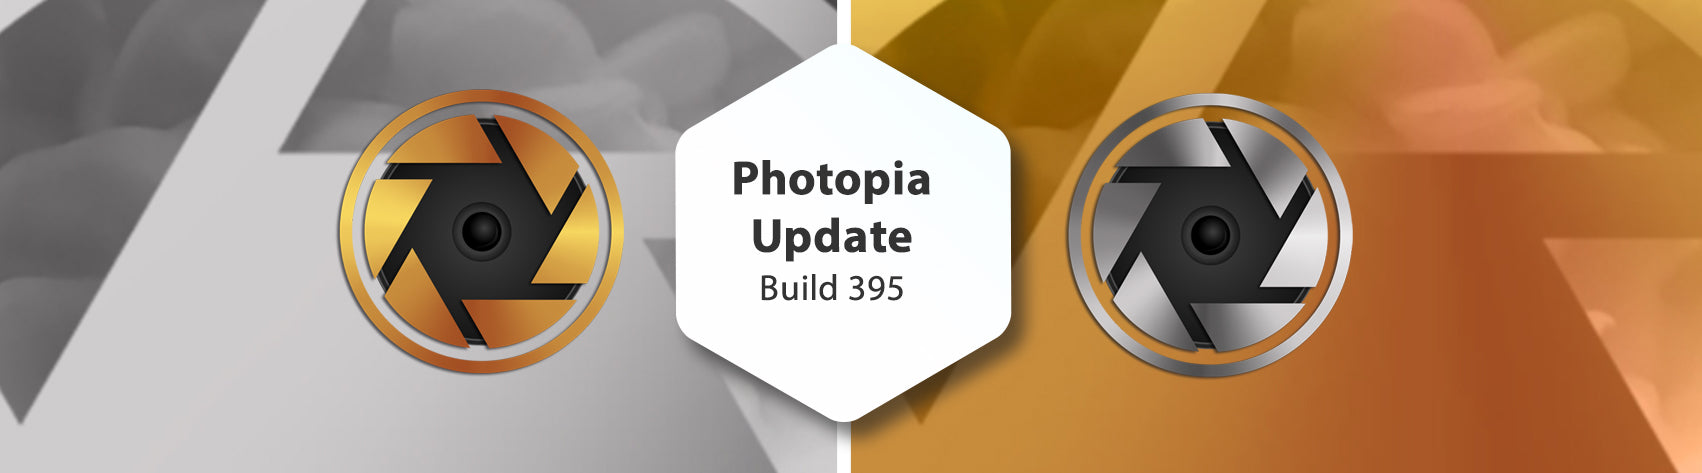 Photopia Update - Build 395